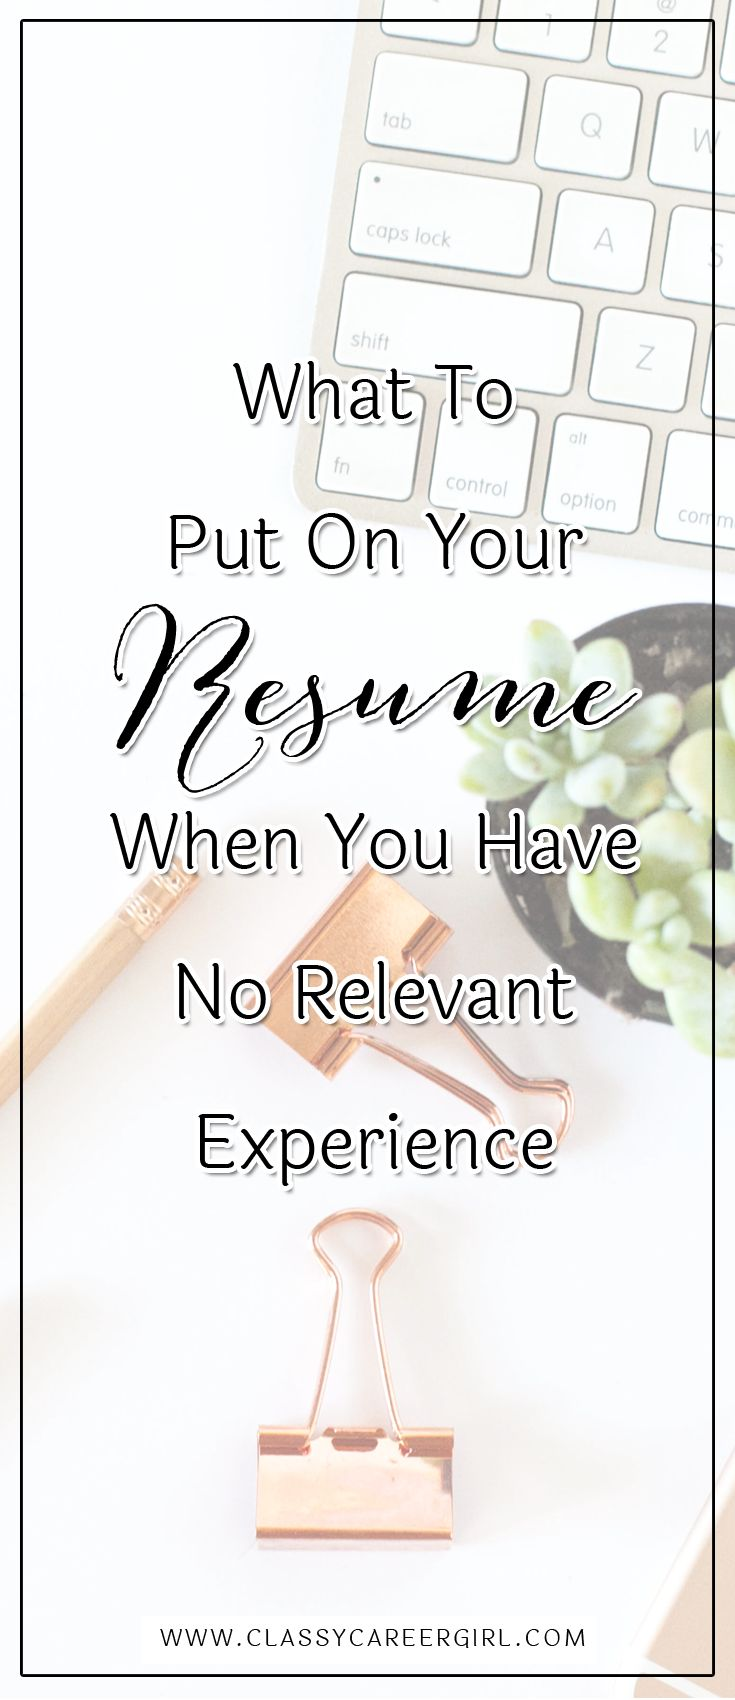 What To Put On Your Resume When You Have No Relevant Experience  Before everything else, read this to jumpstart your job application, especially if you are still writing your resume.  Read more: http://www.classycareergirl.com/2016/12/experience-relevant-resume-tips/